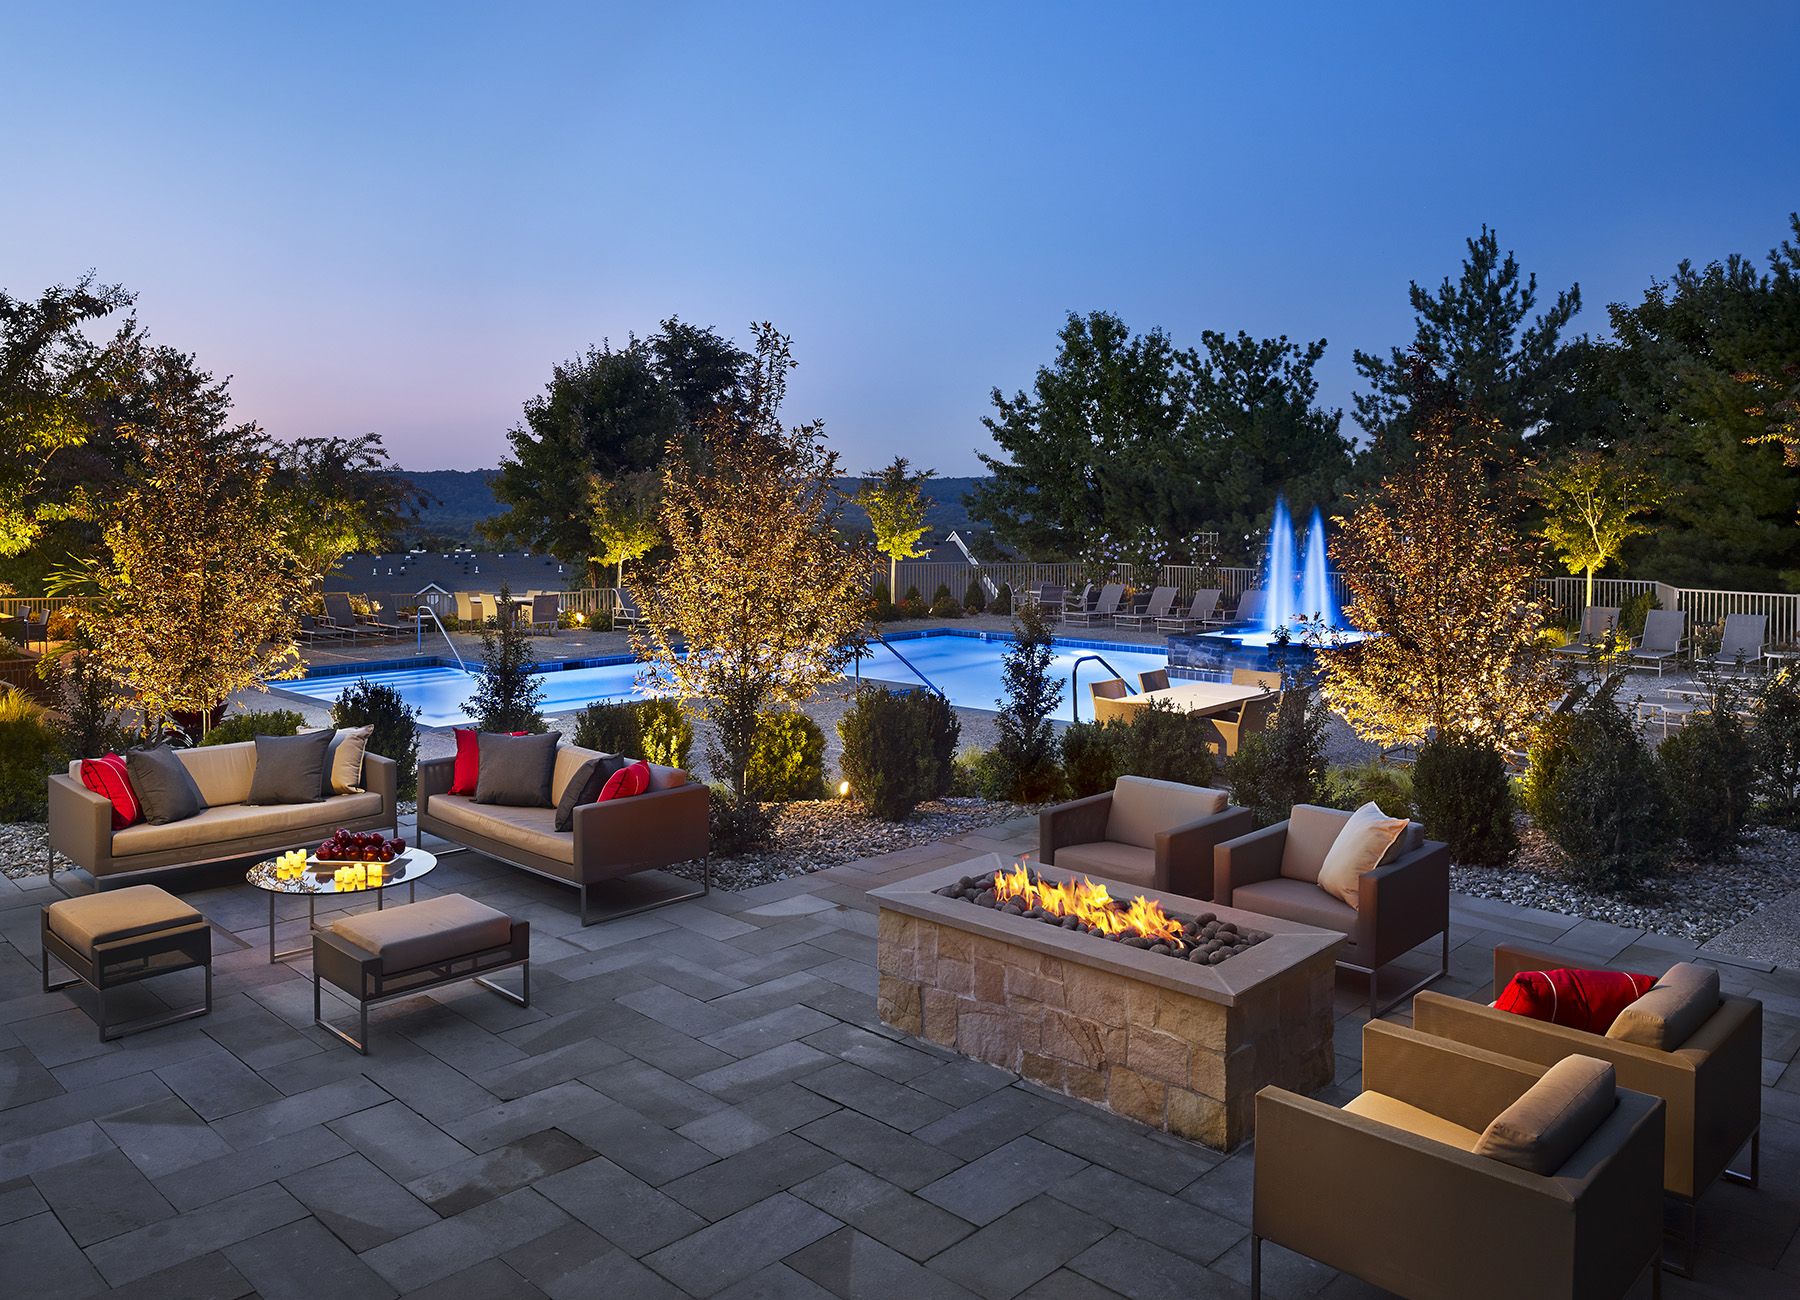 Firepit and lounge chairs in front of pool at night